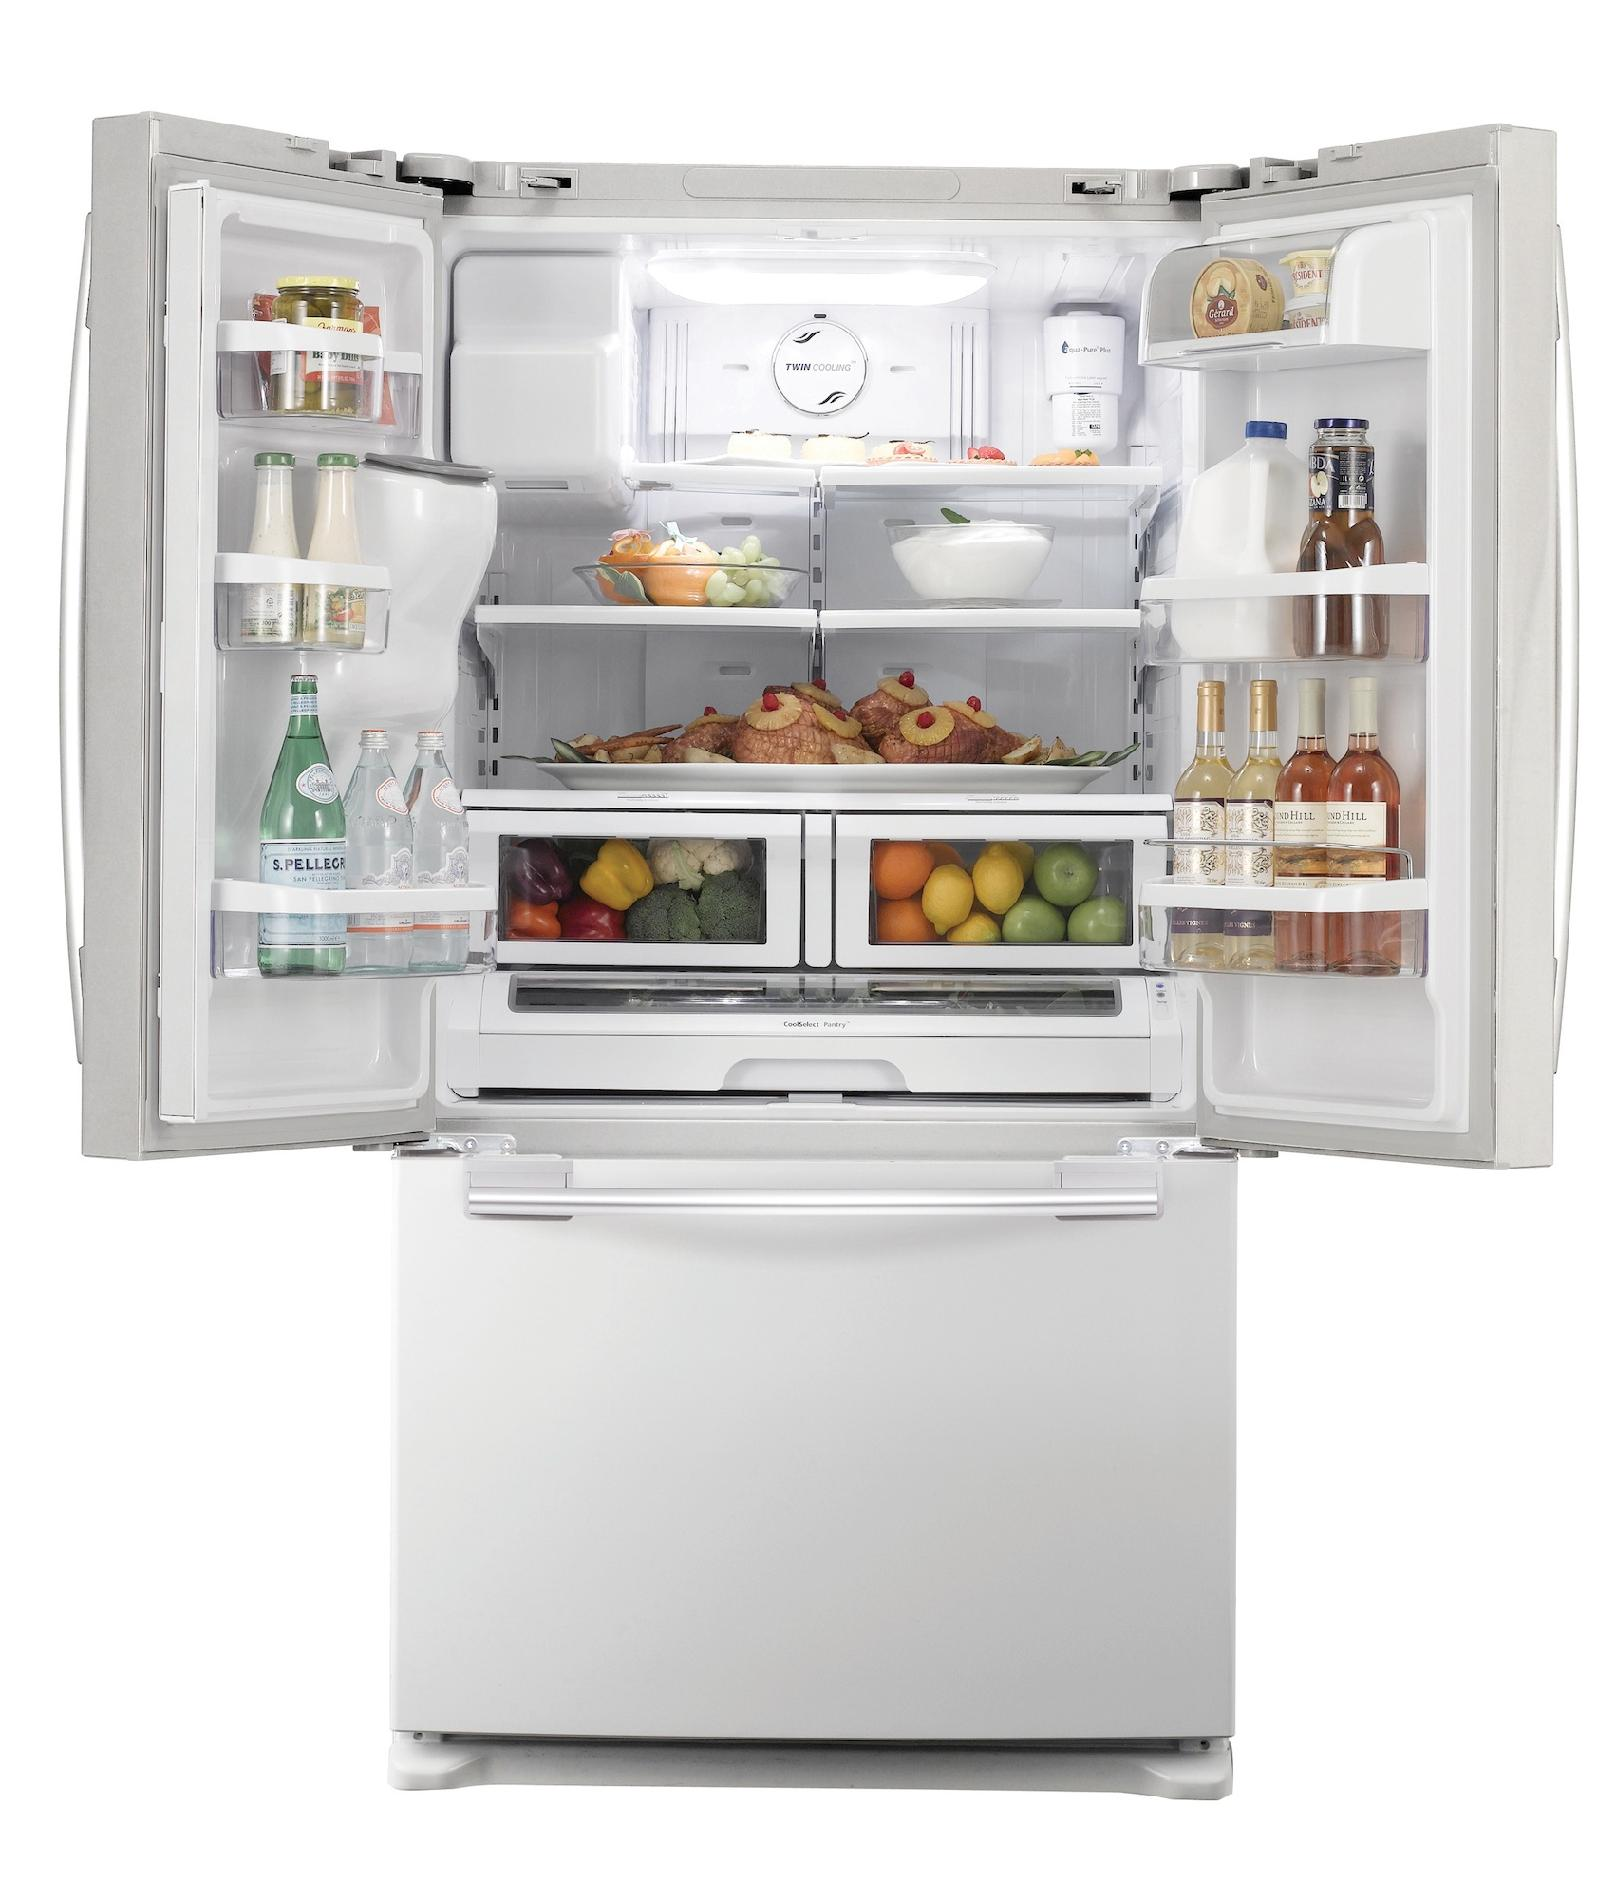 Samsung 26 cu. ft. French Door Refrigerator - White